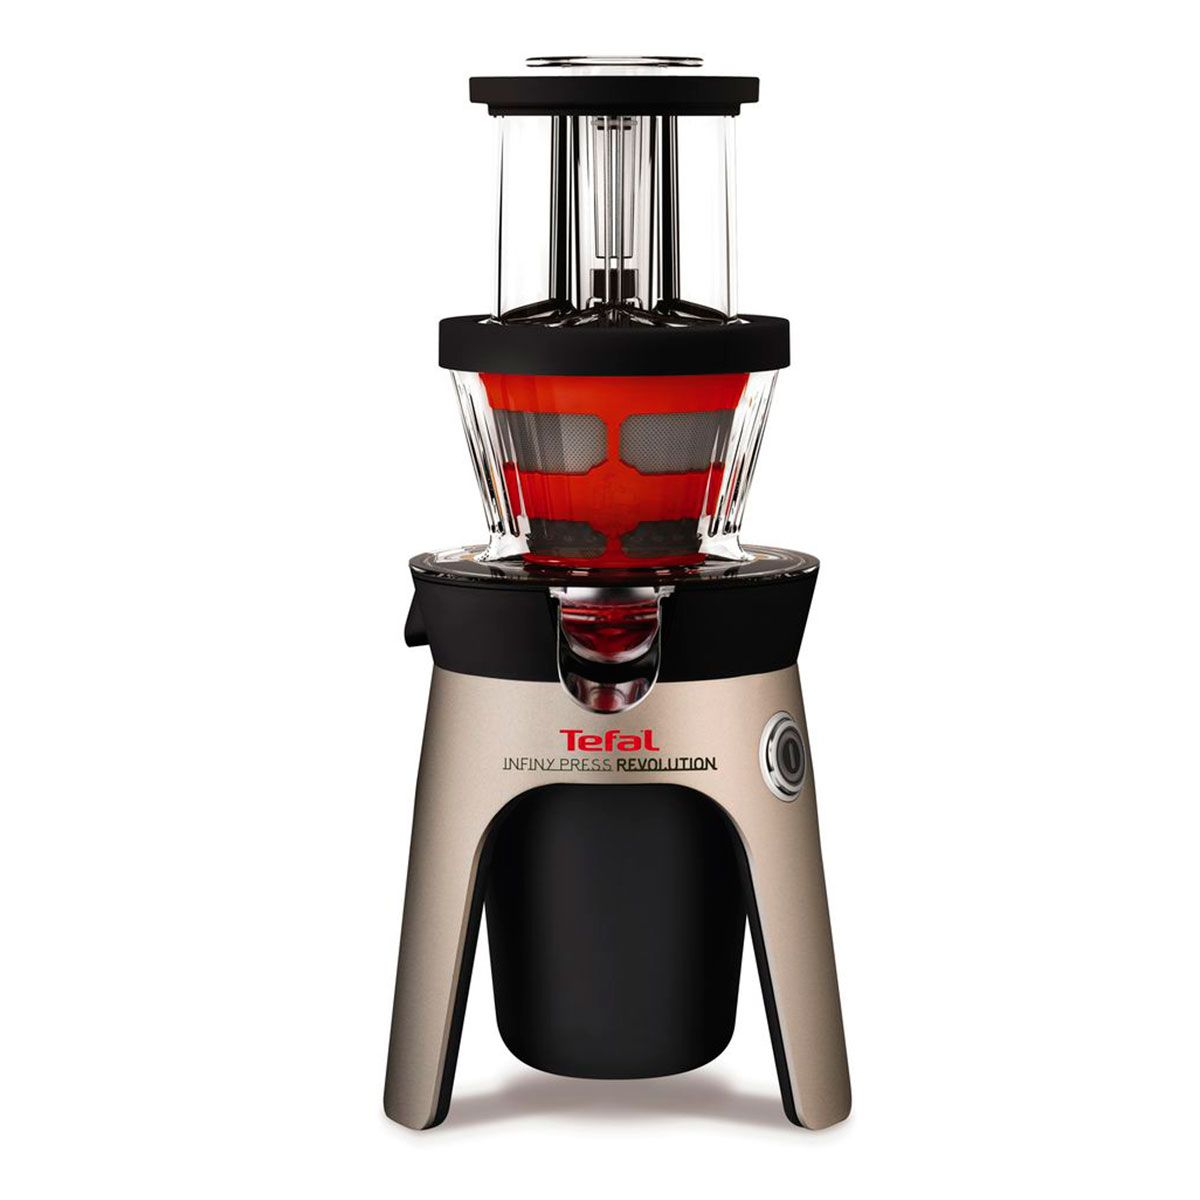 Tefal Infiny Press Revolution Juicer Review Mixer Natonal Omega